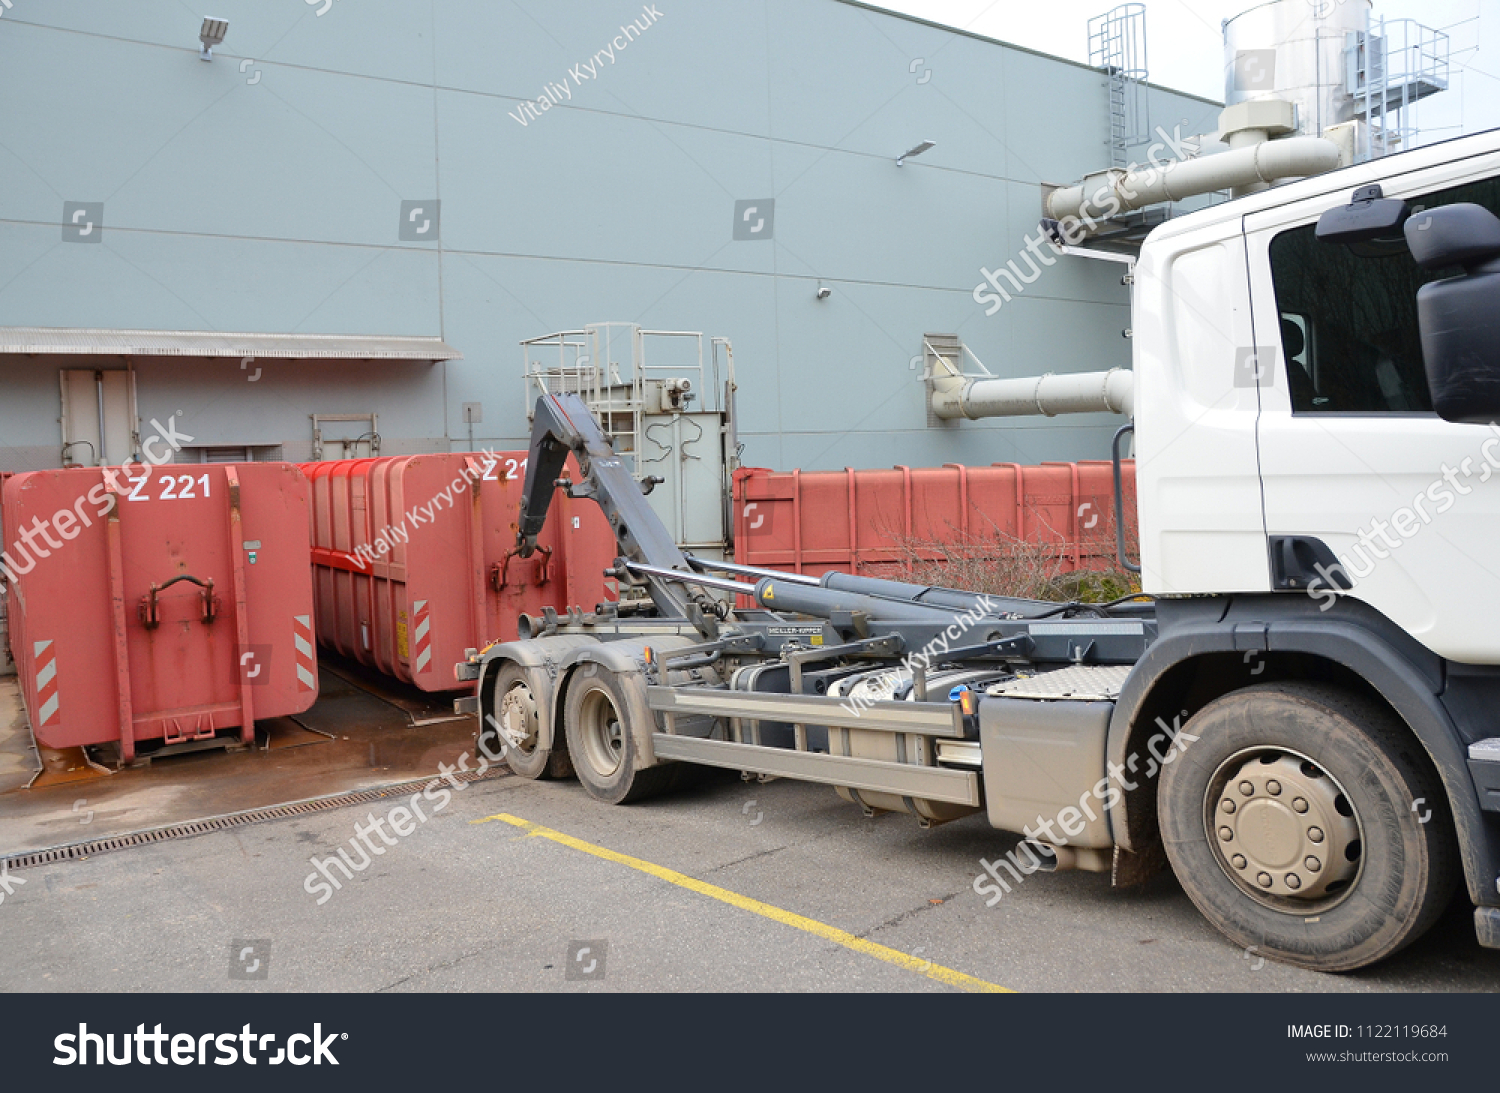 Container Freiburg Freiburg Germany November 27th 2017 Truck Stock Photo Edit Now